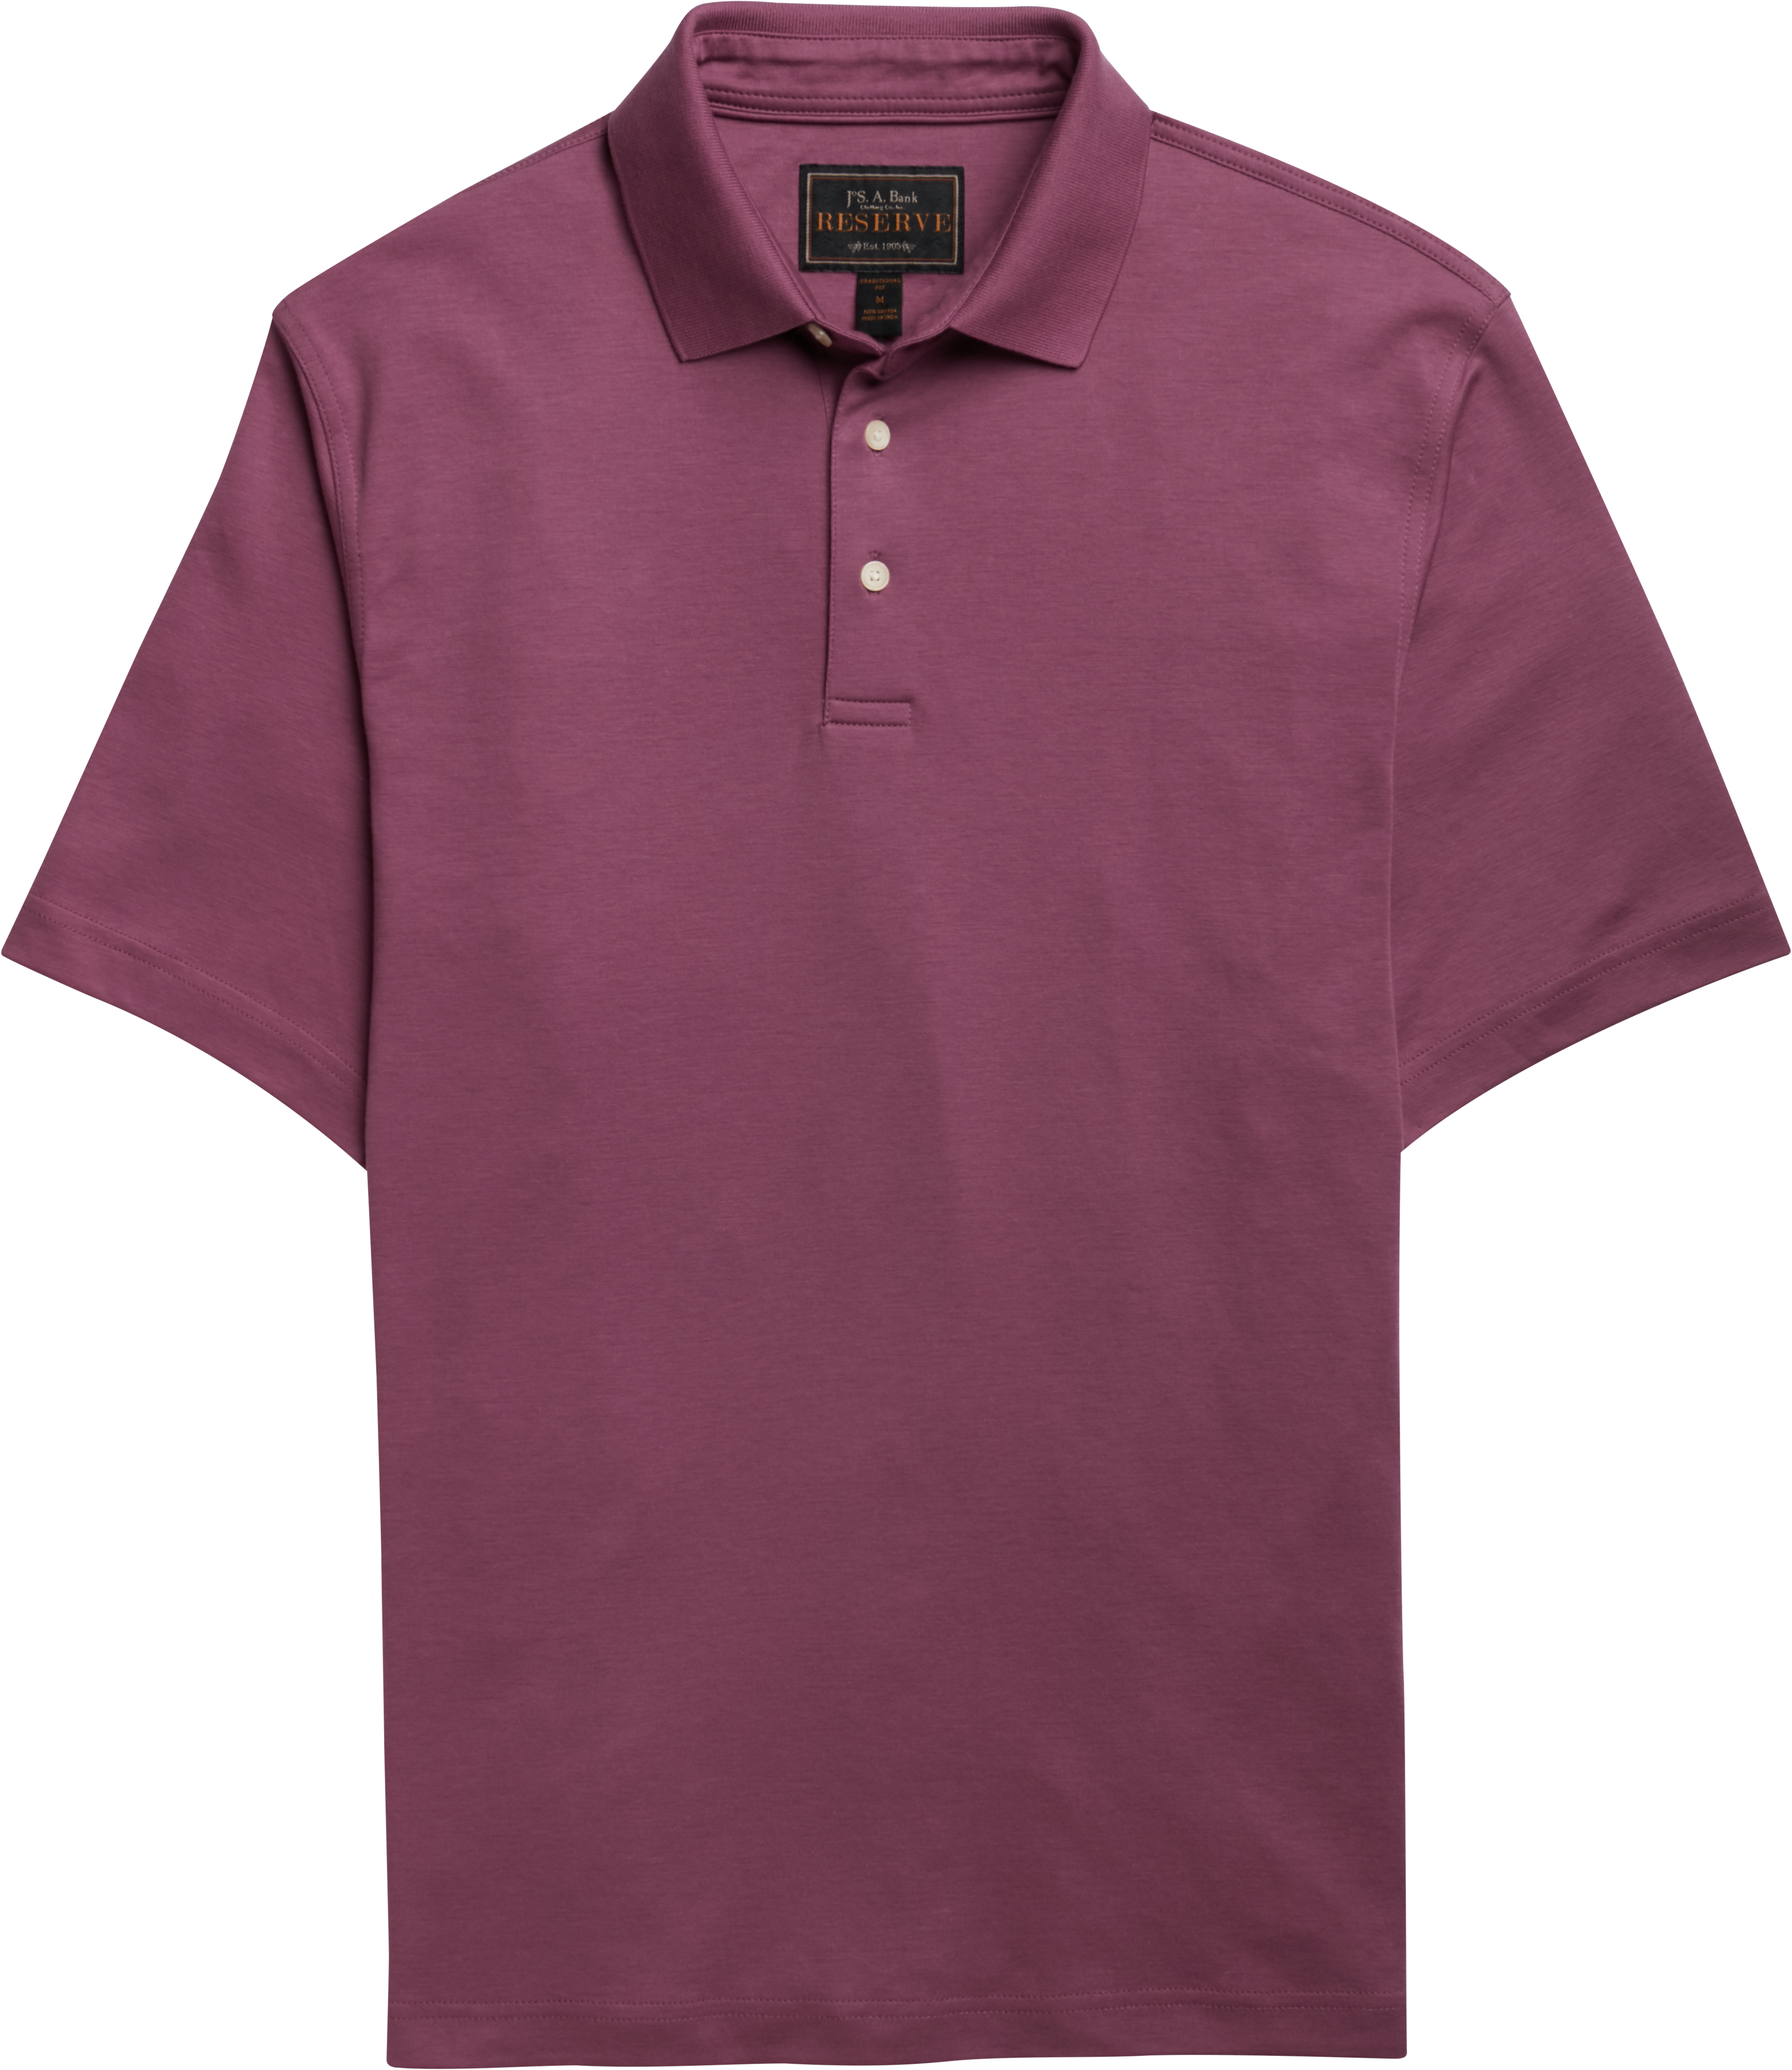 fd3388f879 Reserve Collection Traditional Fit Short Sleeve Pima Cotton Polo